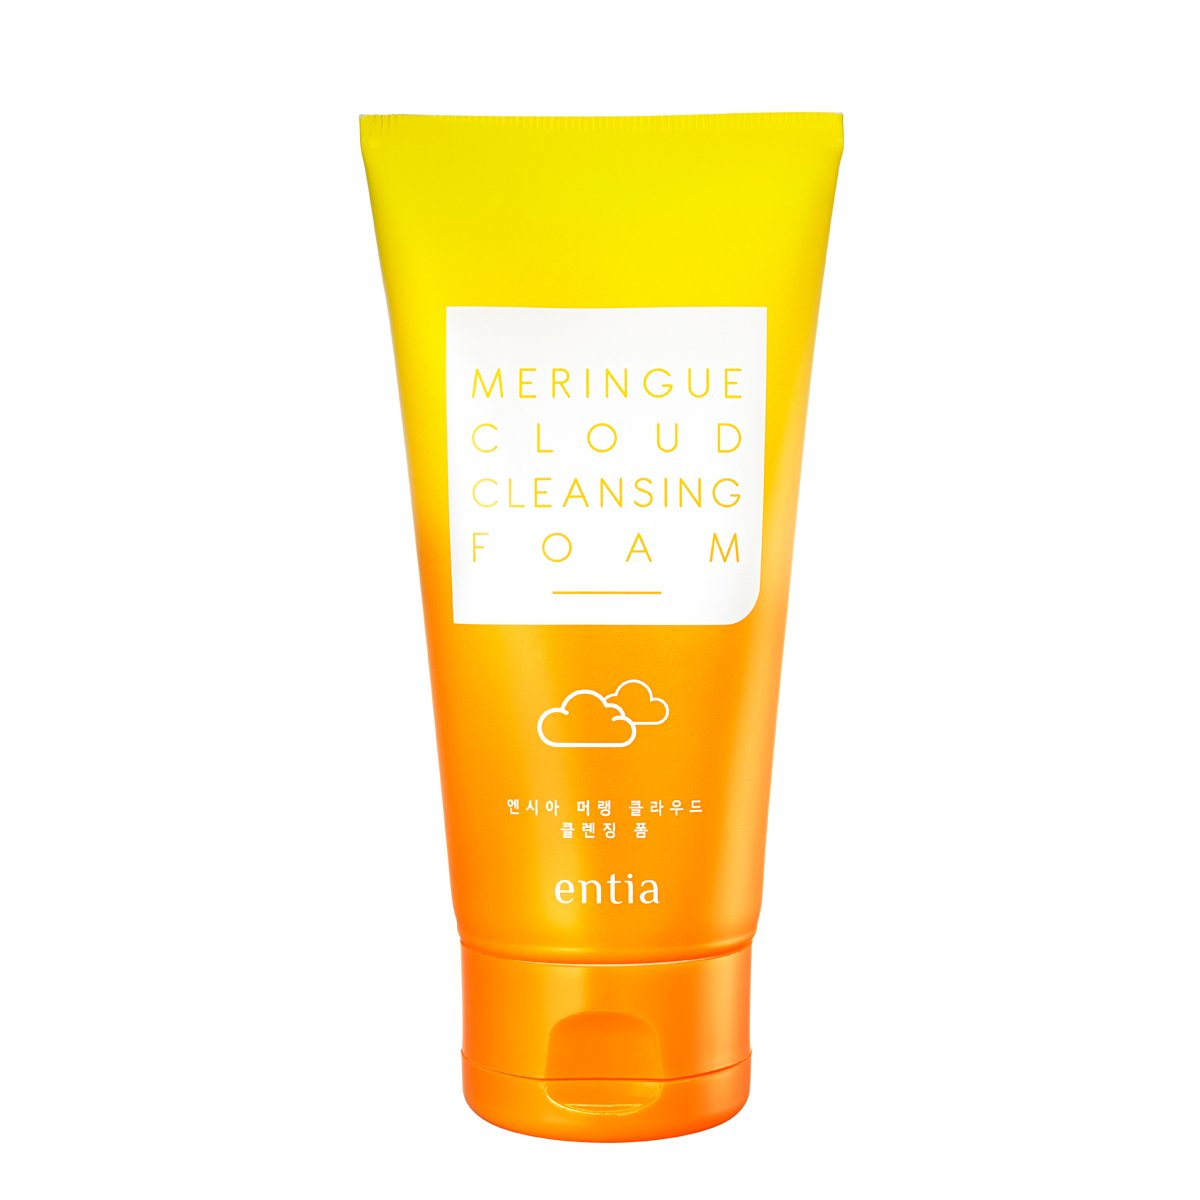 [ENTIA] Meringue Cloud Cleansing Foam 3.38 oz. (100ml) - Pore Care Egg White Foam Cleanser, Rich and Soft Bubble Foam, Hypoallergenic Deep Cleansing Brightening Cleanser